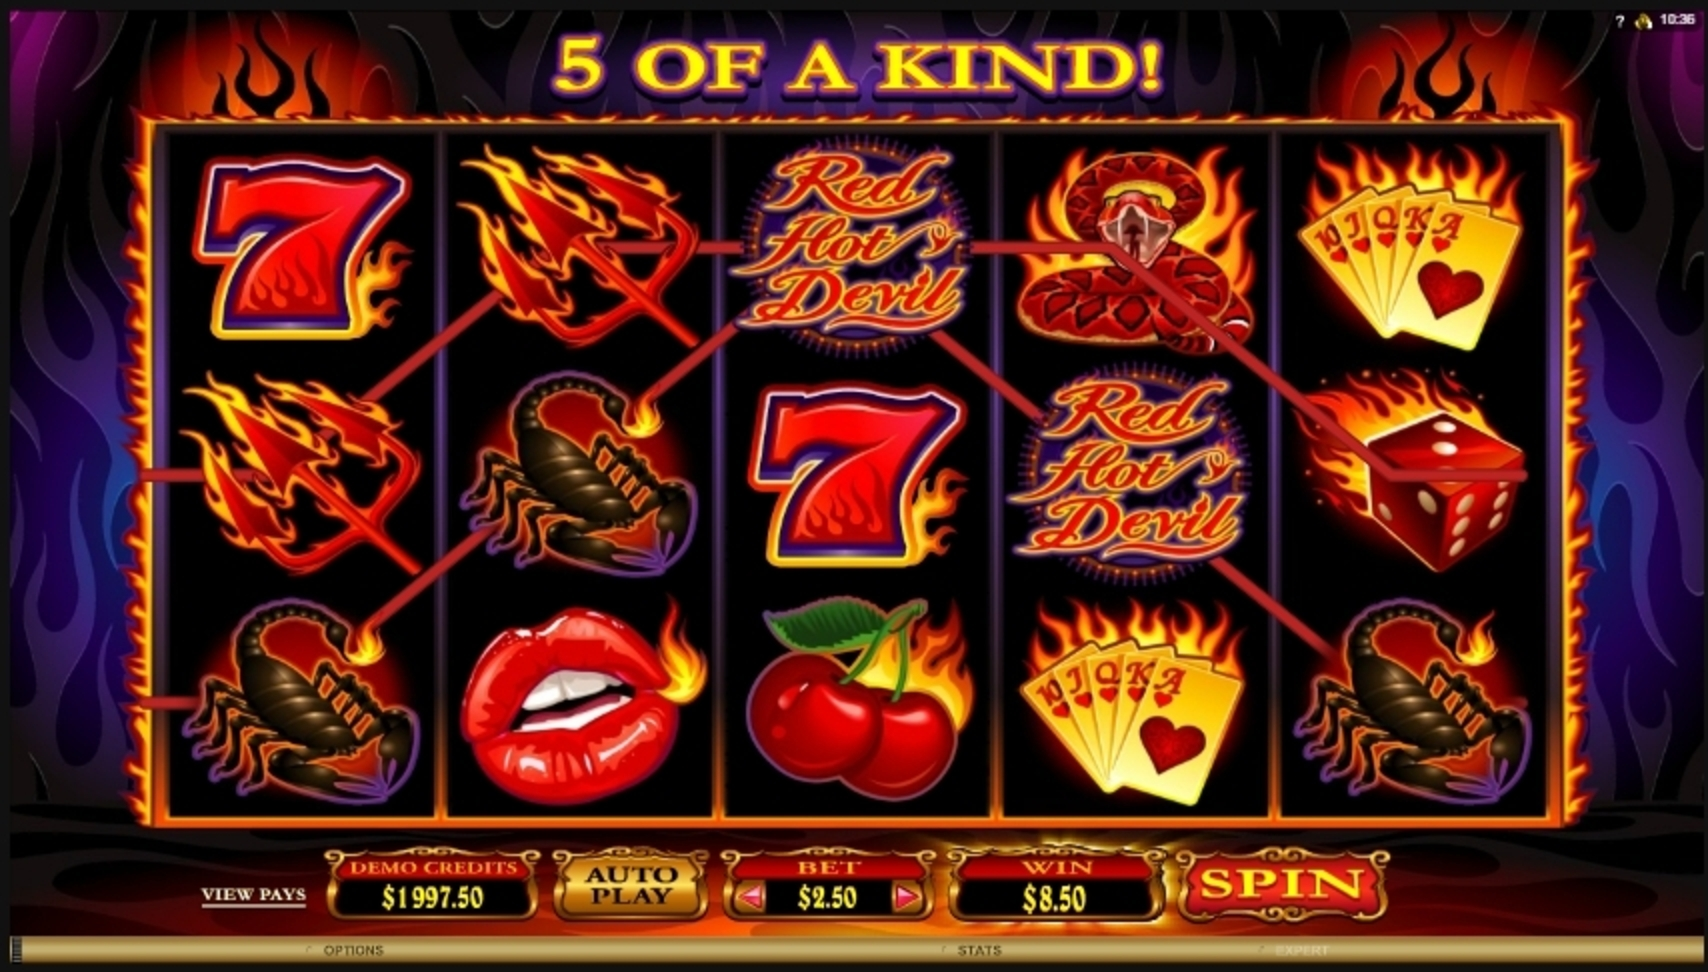 Win Money in Red Hot Devil Free Slot Game by Microgaming